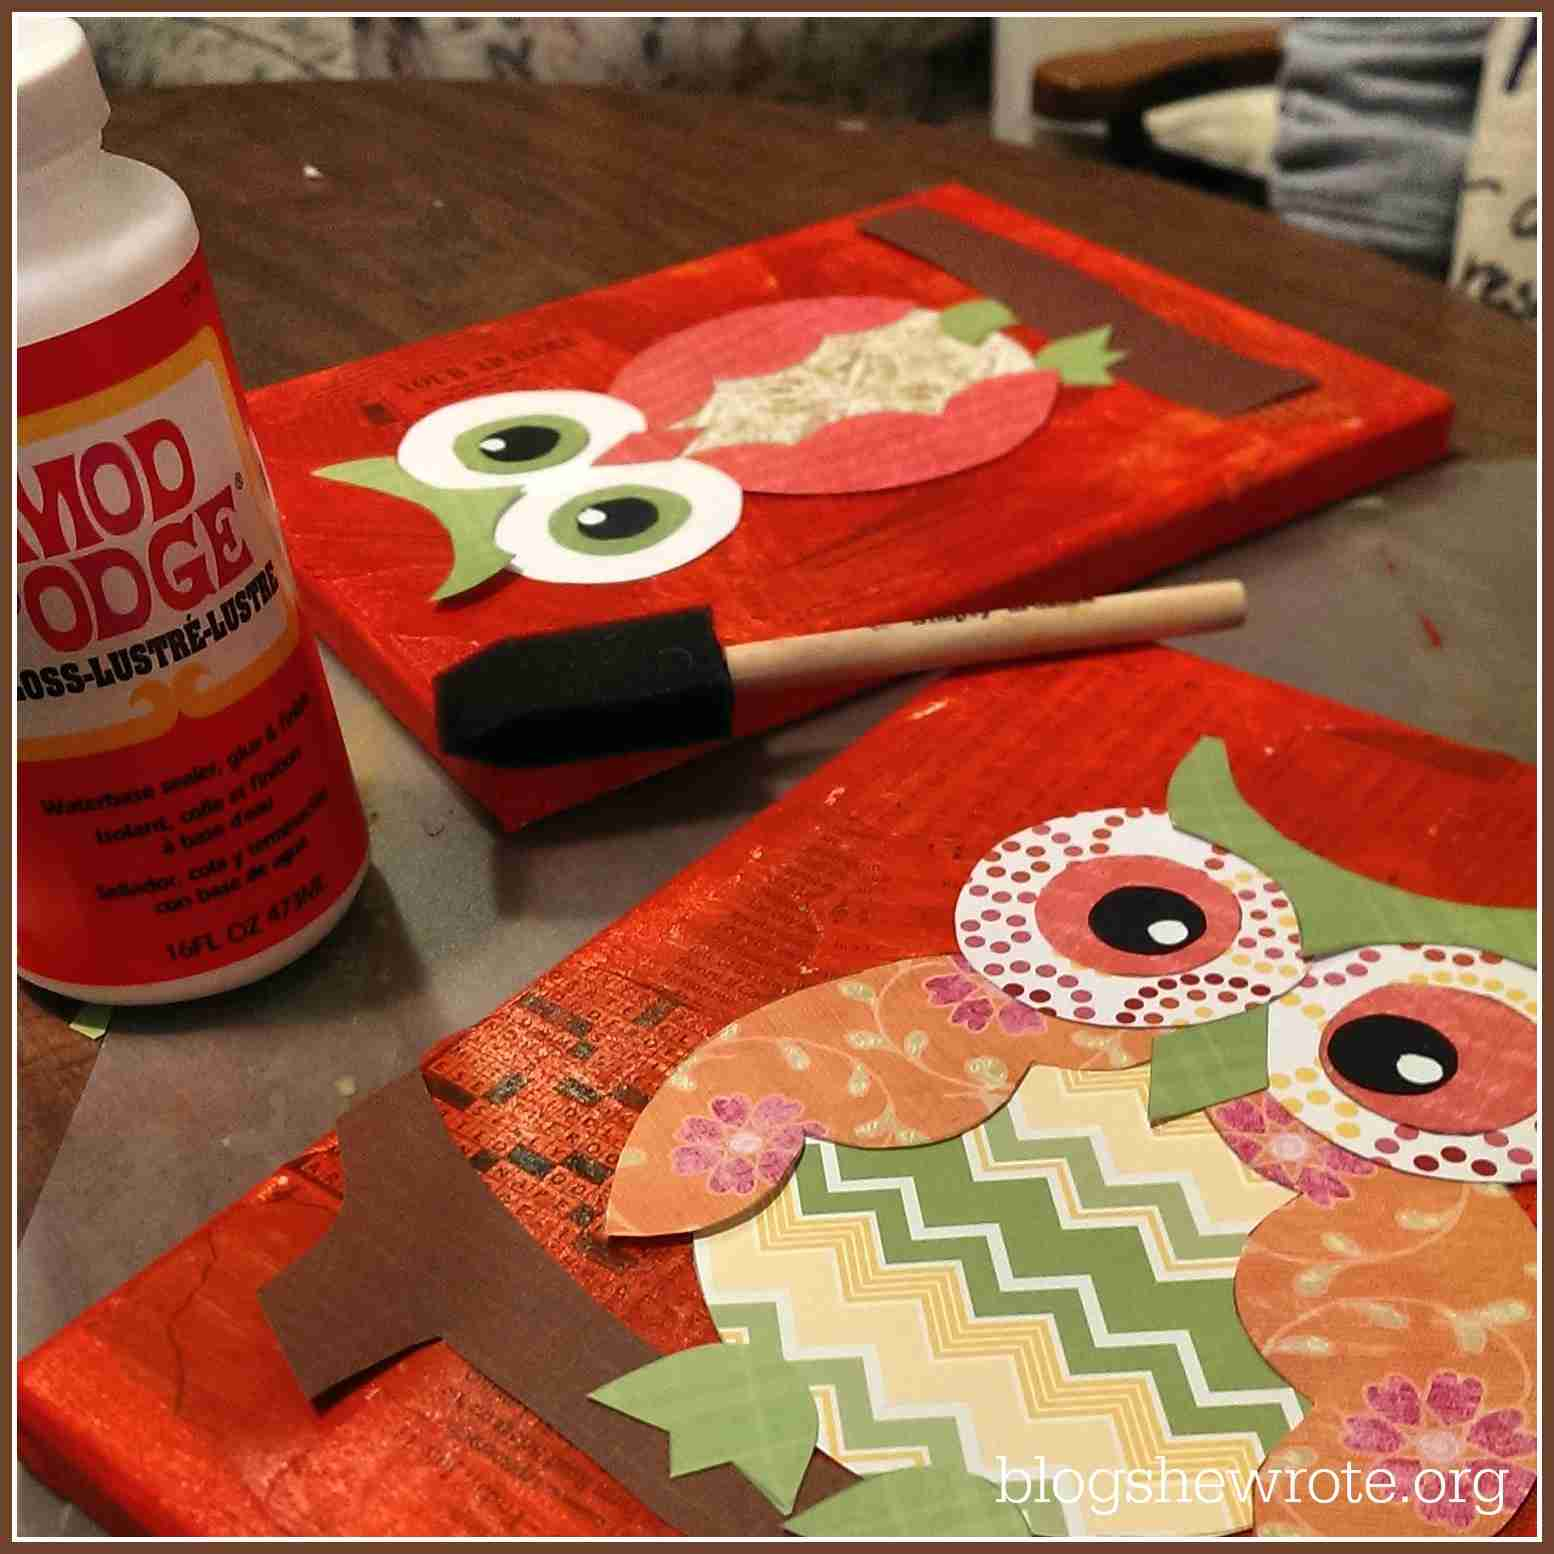 Blog, She Wrote: Mixed Media Fun for Homeschool Art